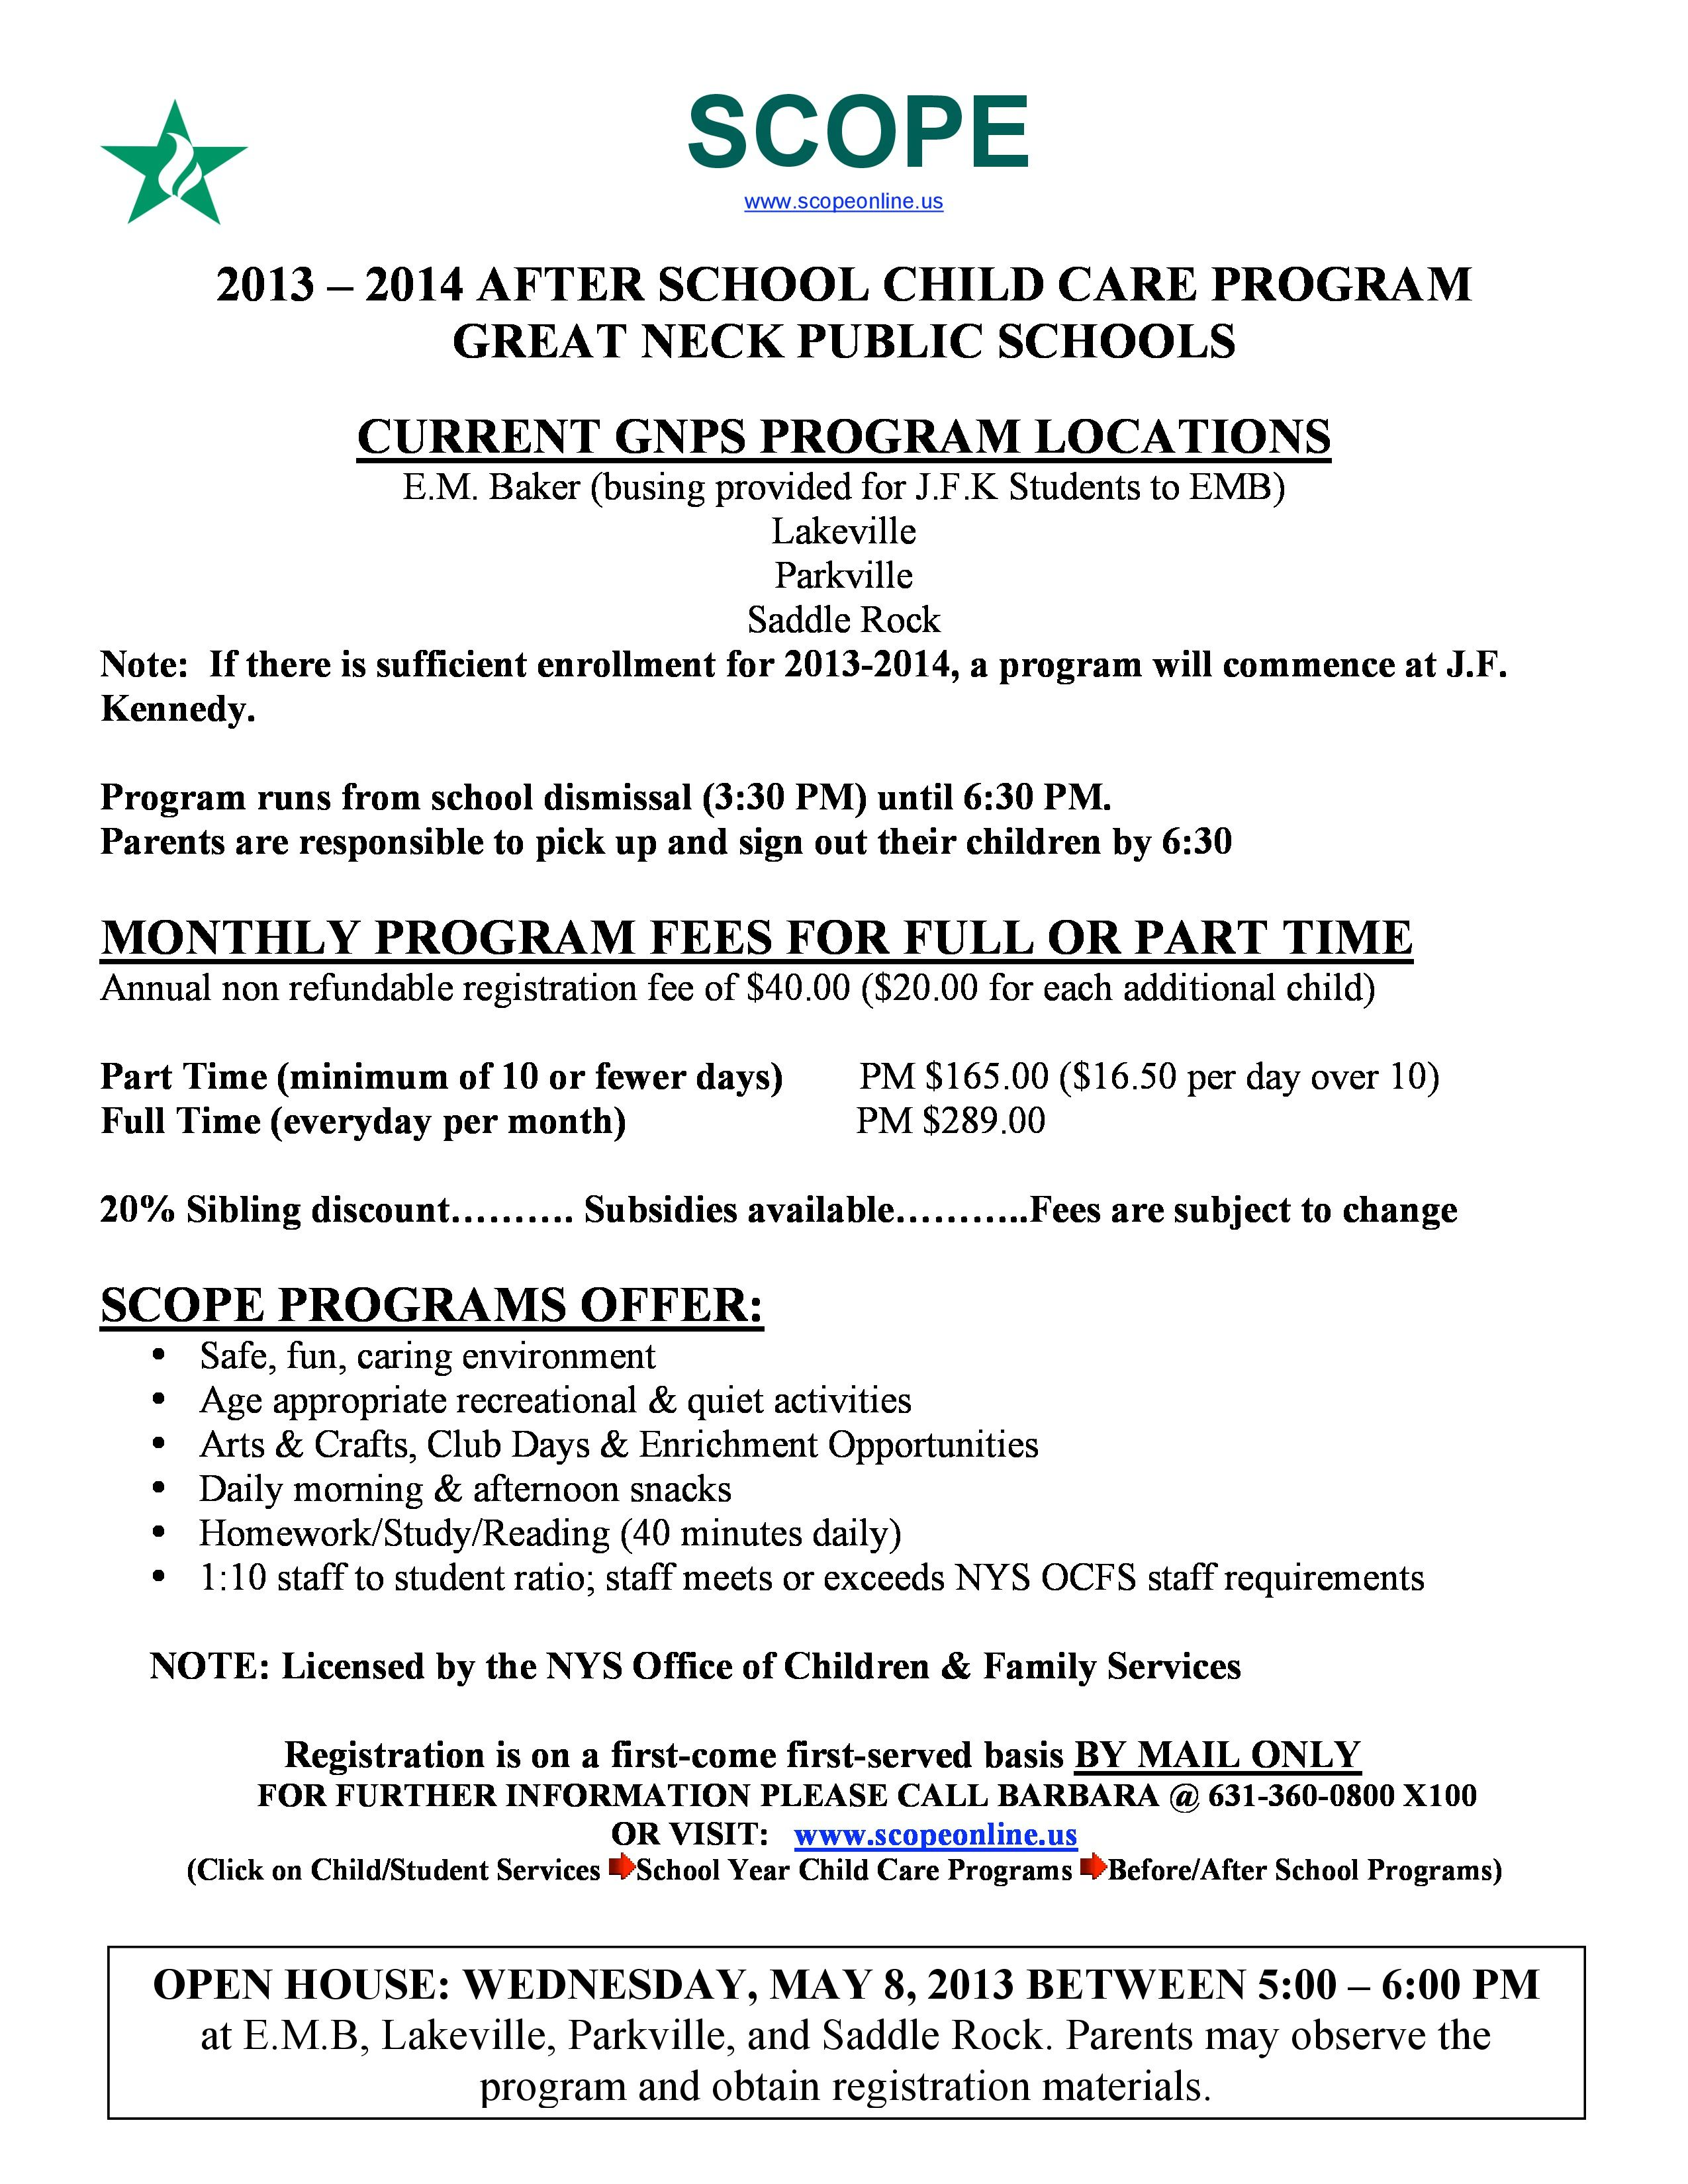 2013 2014 After School Child Care Program Great Neck Public Schools After School Child Care Public School Great Neck